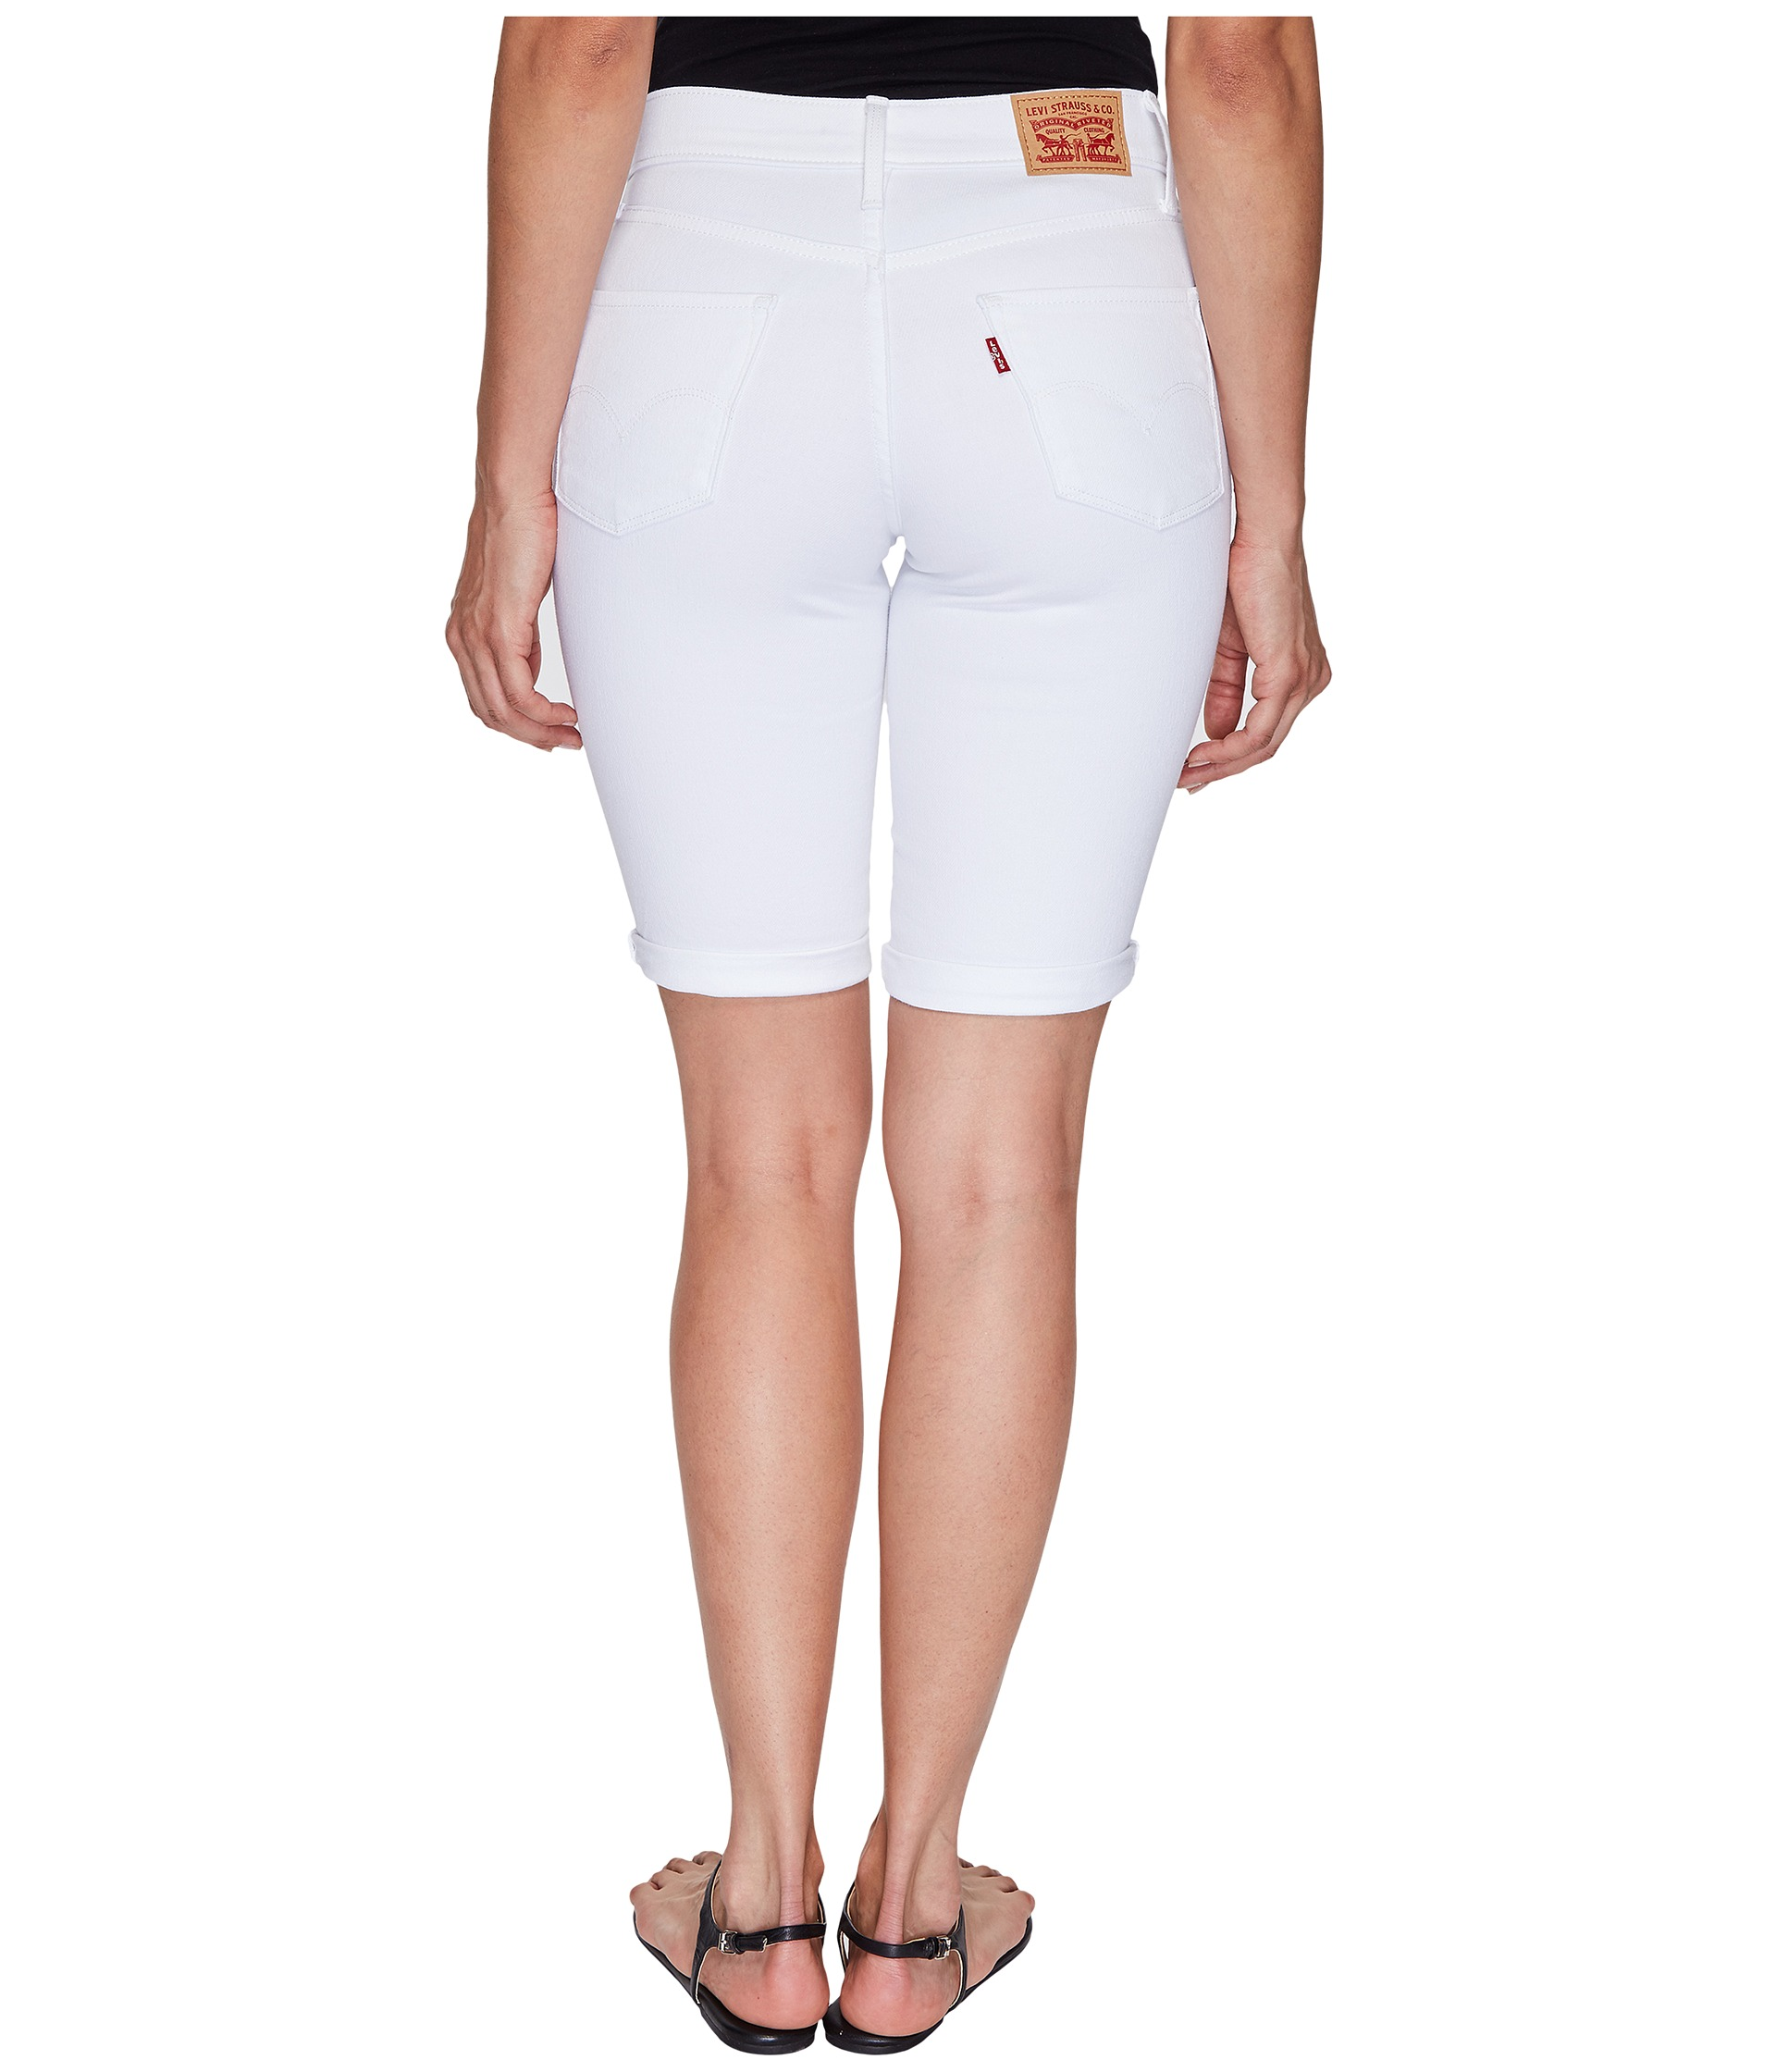 Bermuda shorts for women offer her a range of different styles to choose from. Find styles, such as denim shorts, that are suitable to relax in at home or when visiting with friends. Or choose plaid shorts that are equally at home on the golf course as they are at her favorite coffee house.